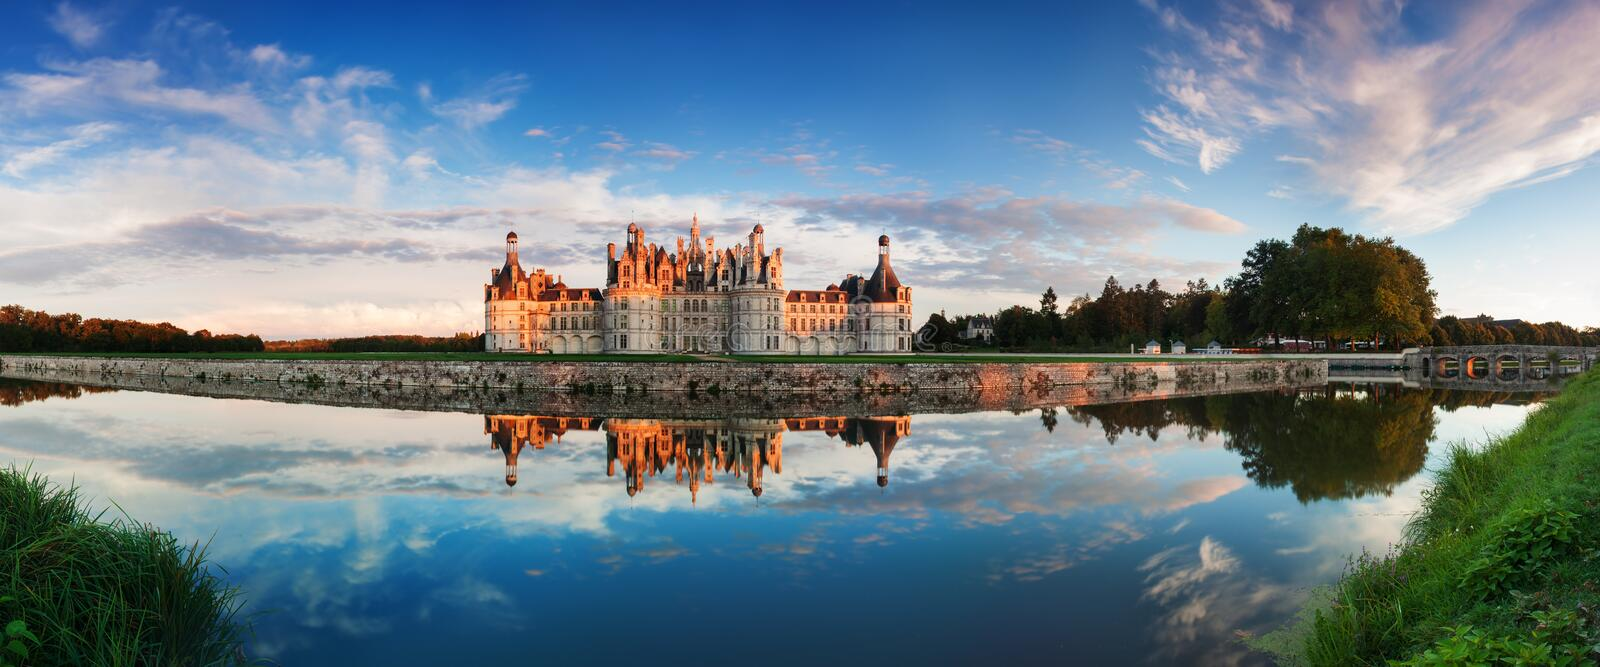 Chateau de Chambord, the largest castle and reflection in the Loire Valley. A UNESCO world heritage site in France. stock photography